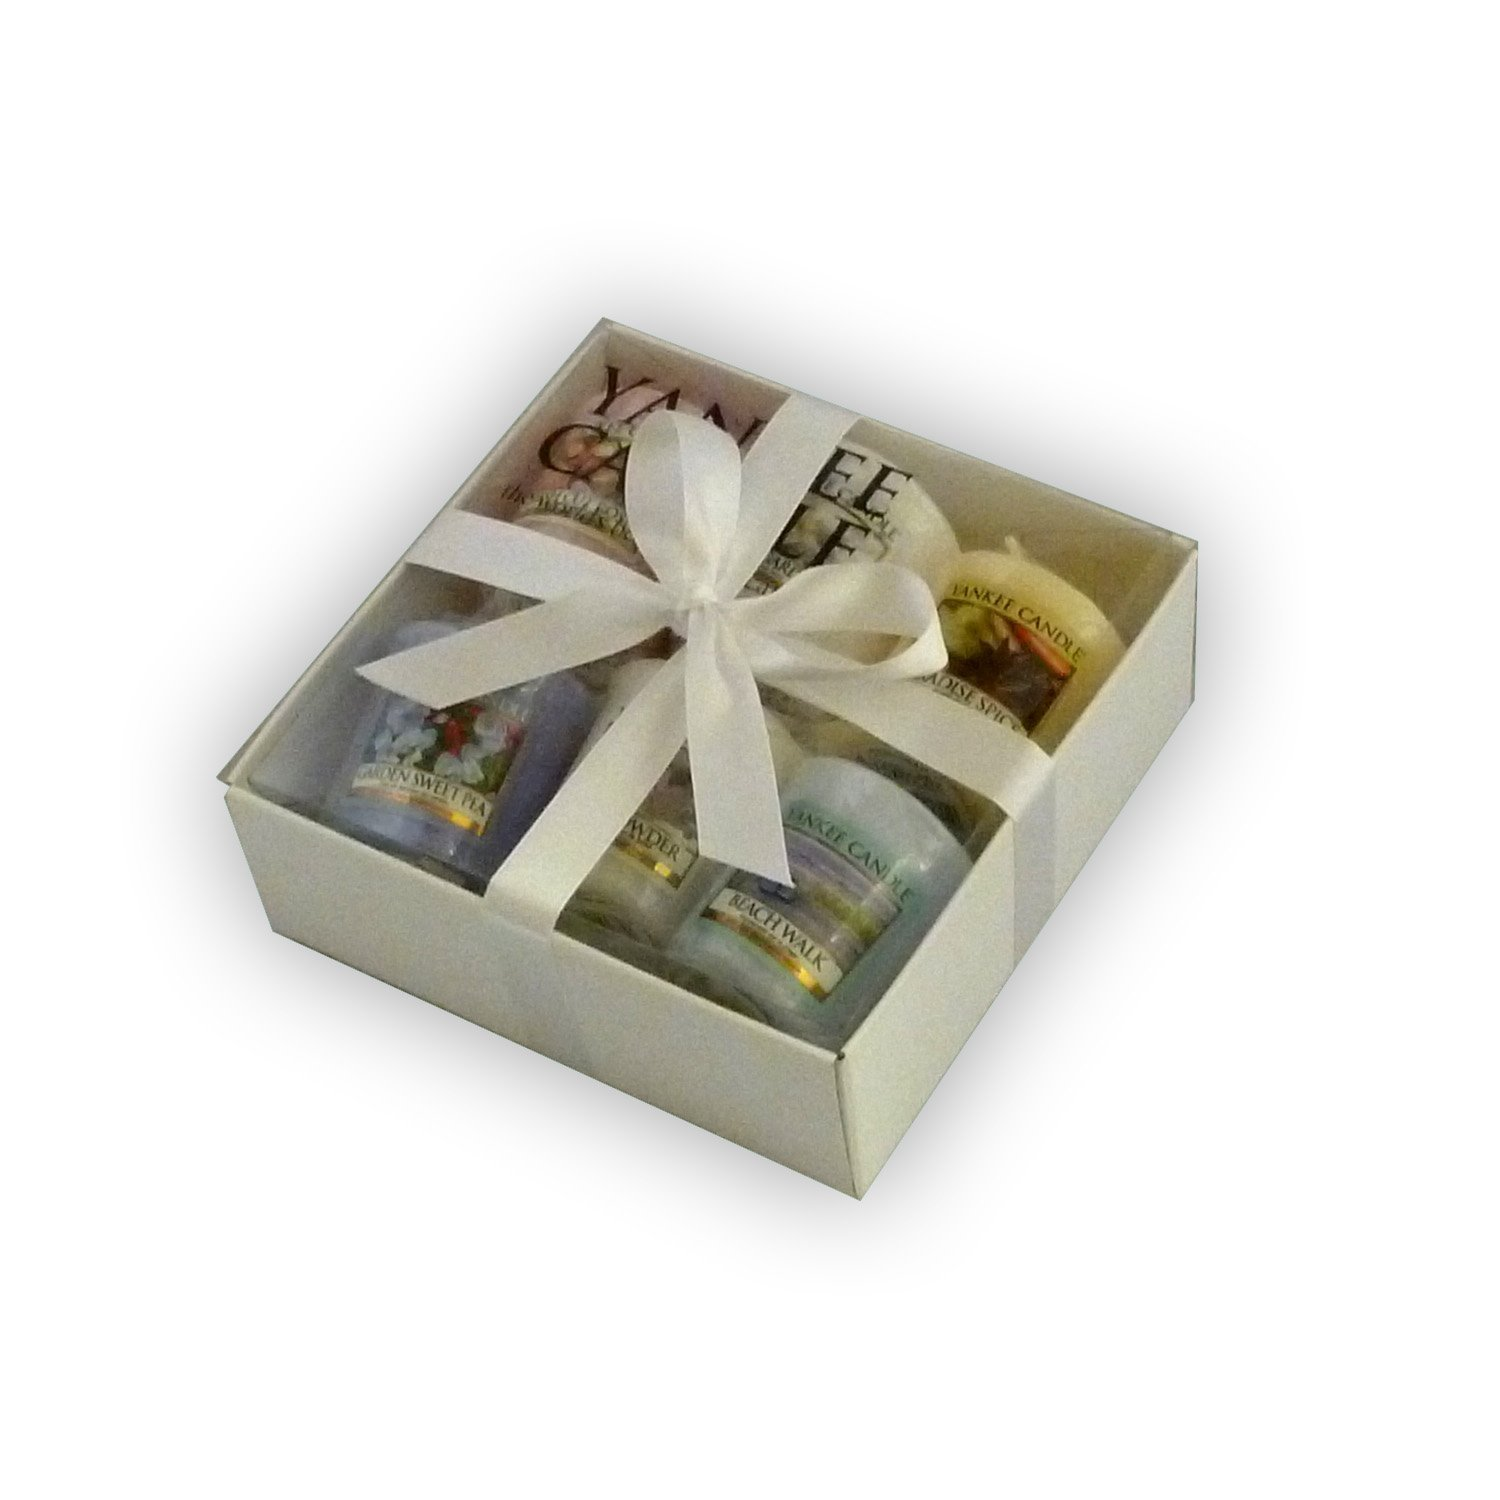 yankee candle gift set 100 Cheap Thoughtful Gift Ideas For Her Under £20